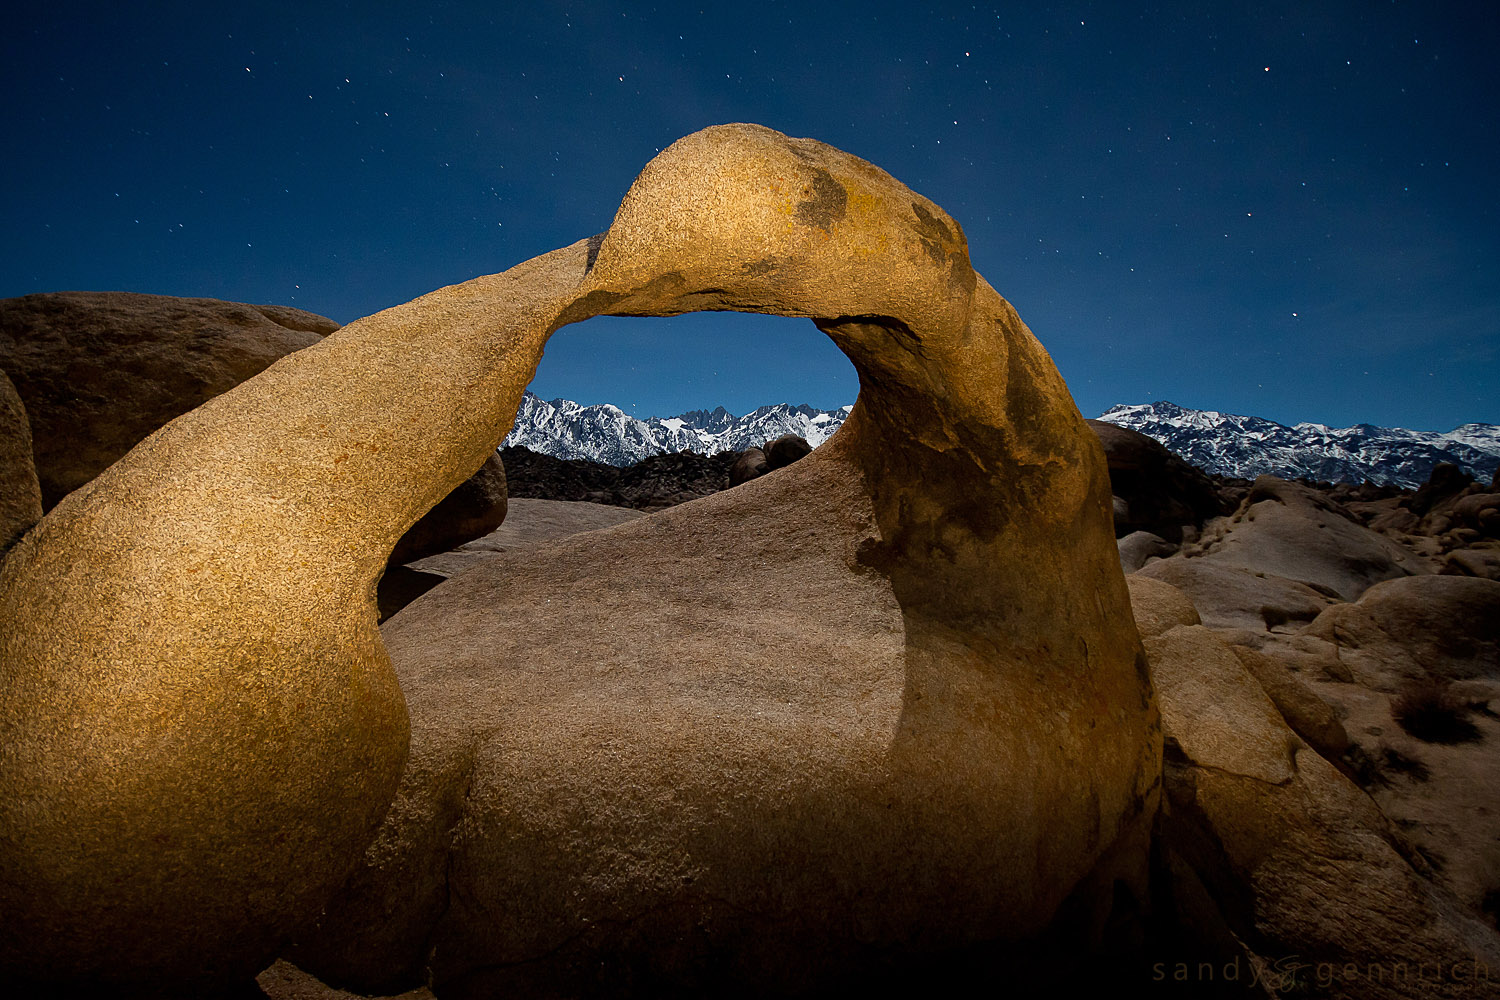 Clear Night in the Sierras - Mobius Arch - Alabama Hills - Lone